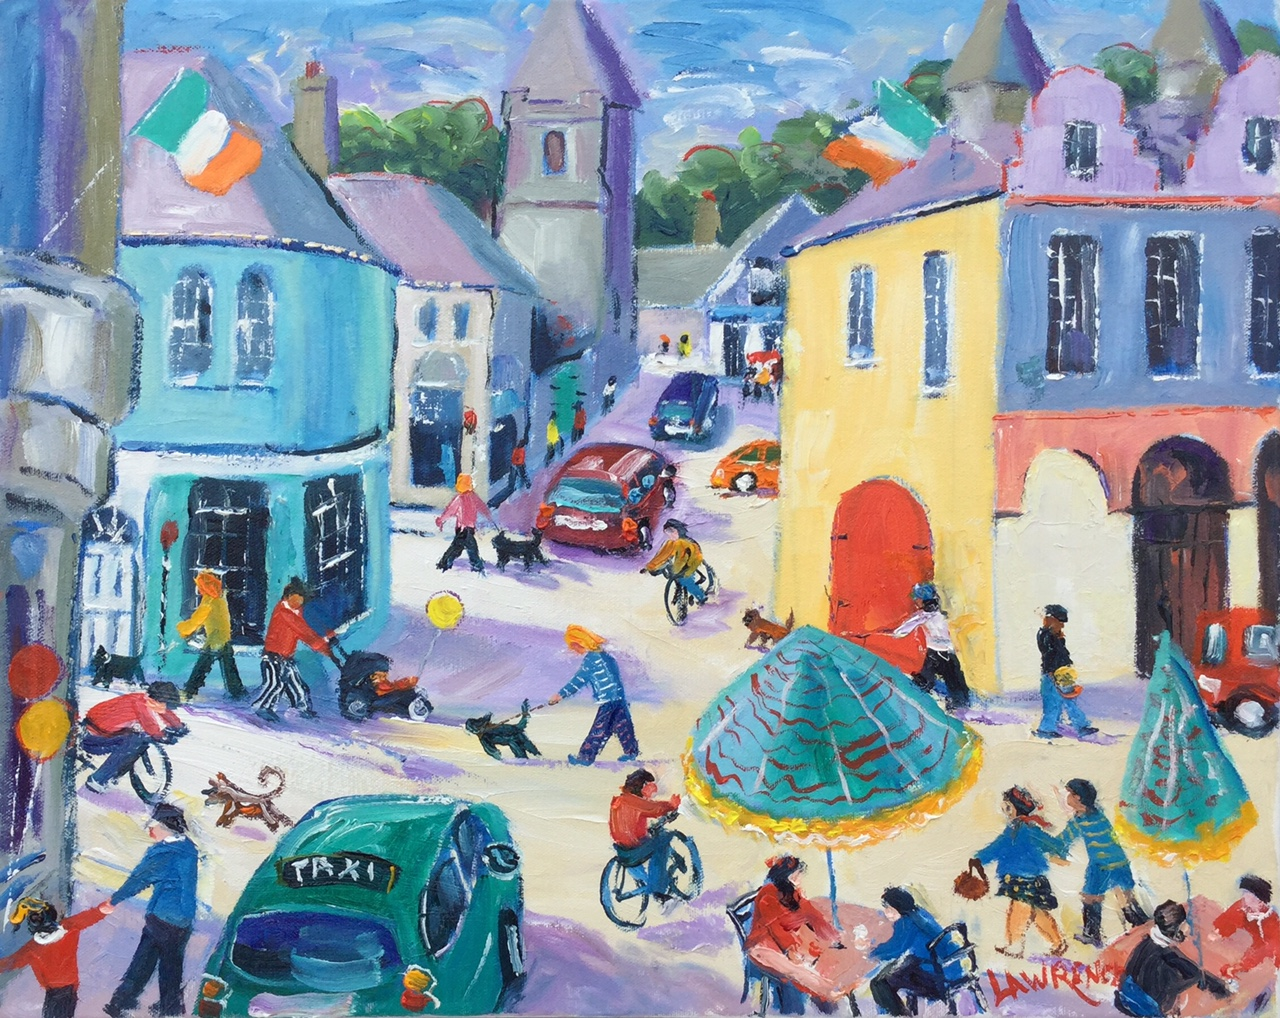 Busy Kinsale one way only